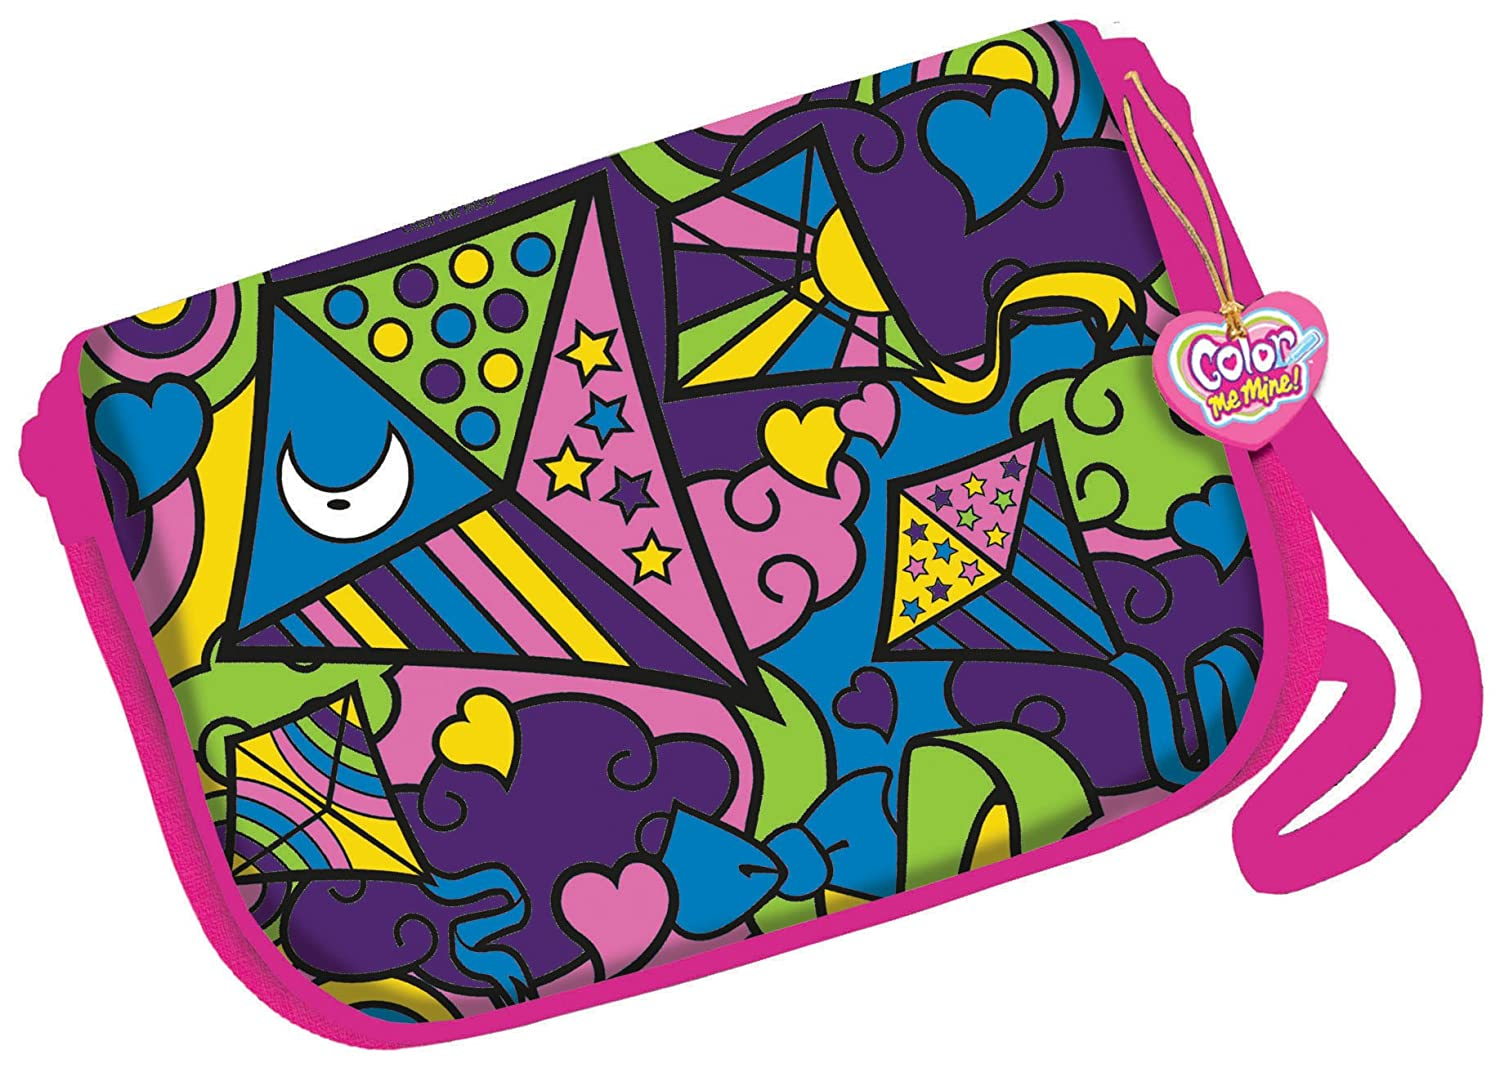 Simba 106371192 Color Me Mine Pink The Courier 34 x 27 cm